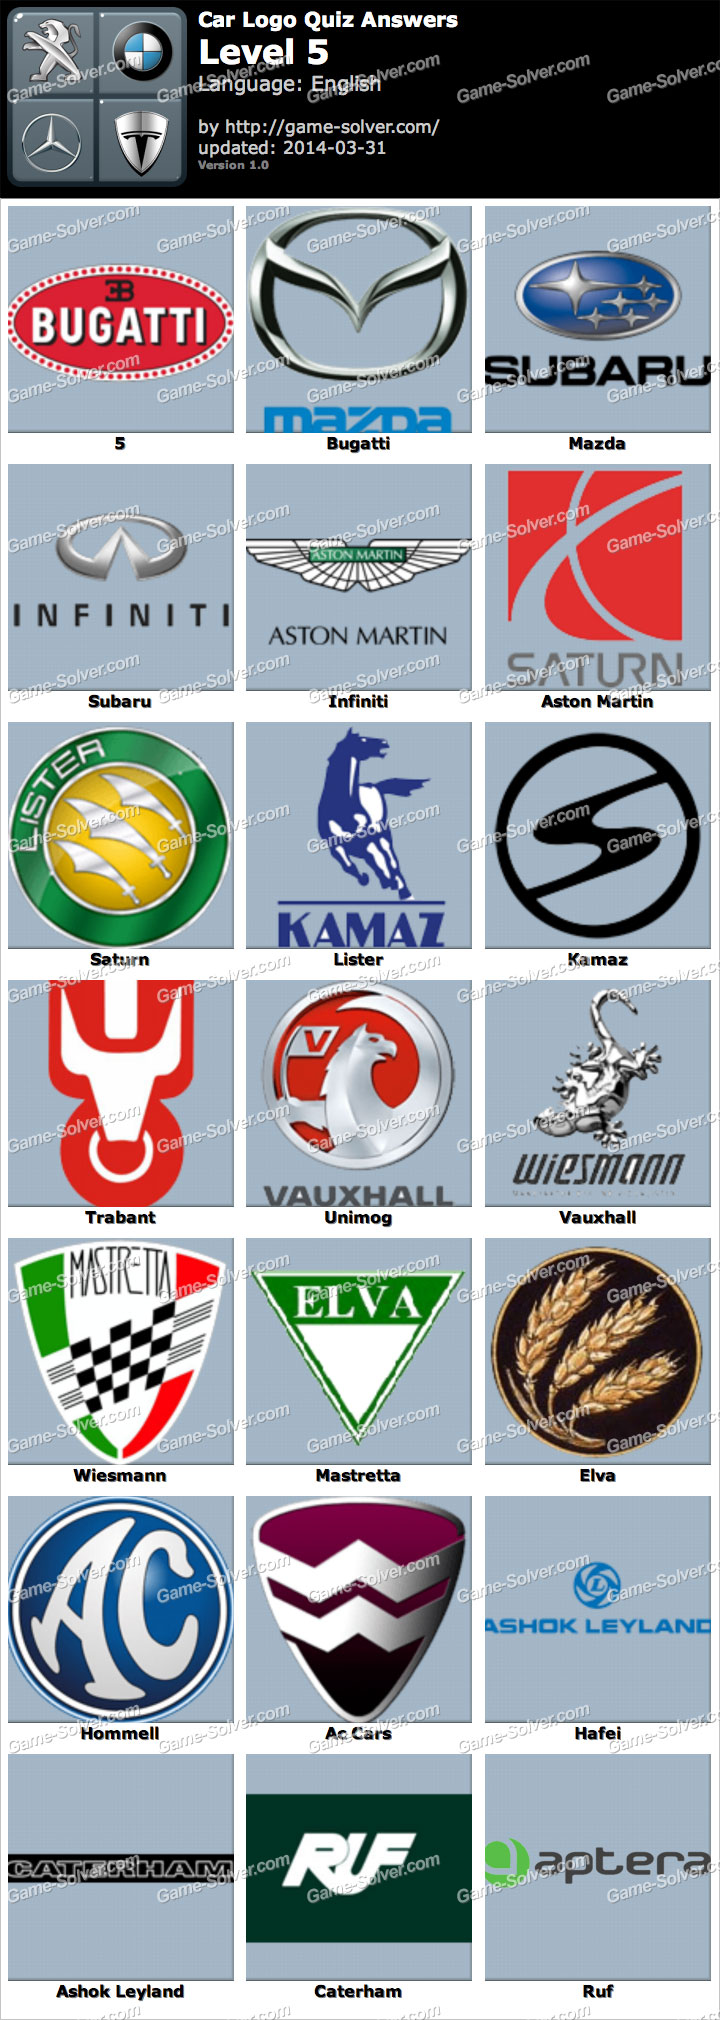 Car Logo Quiz Level 5